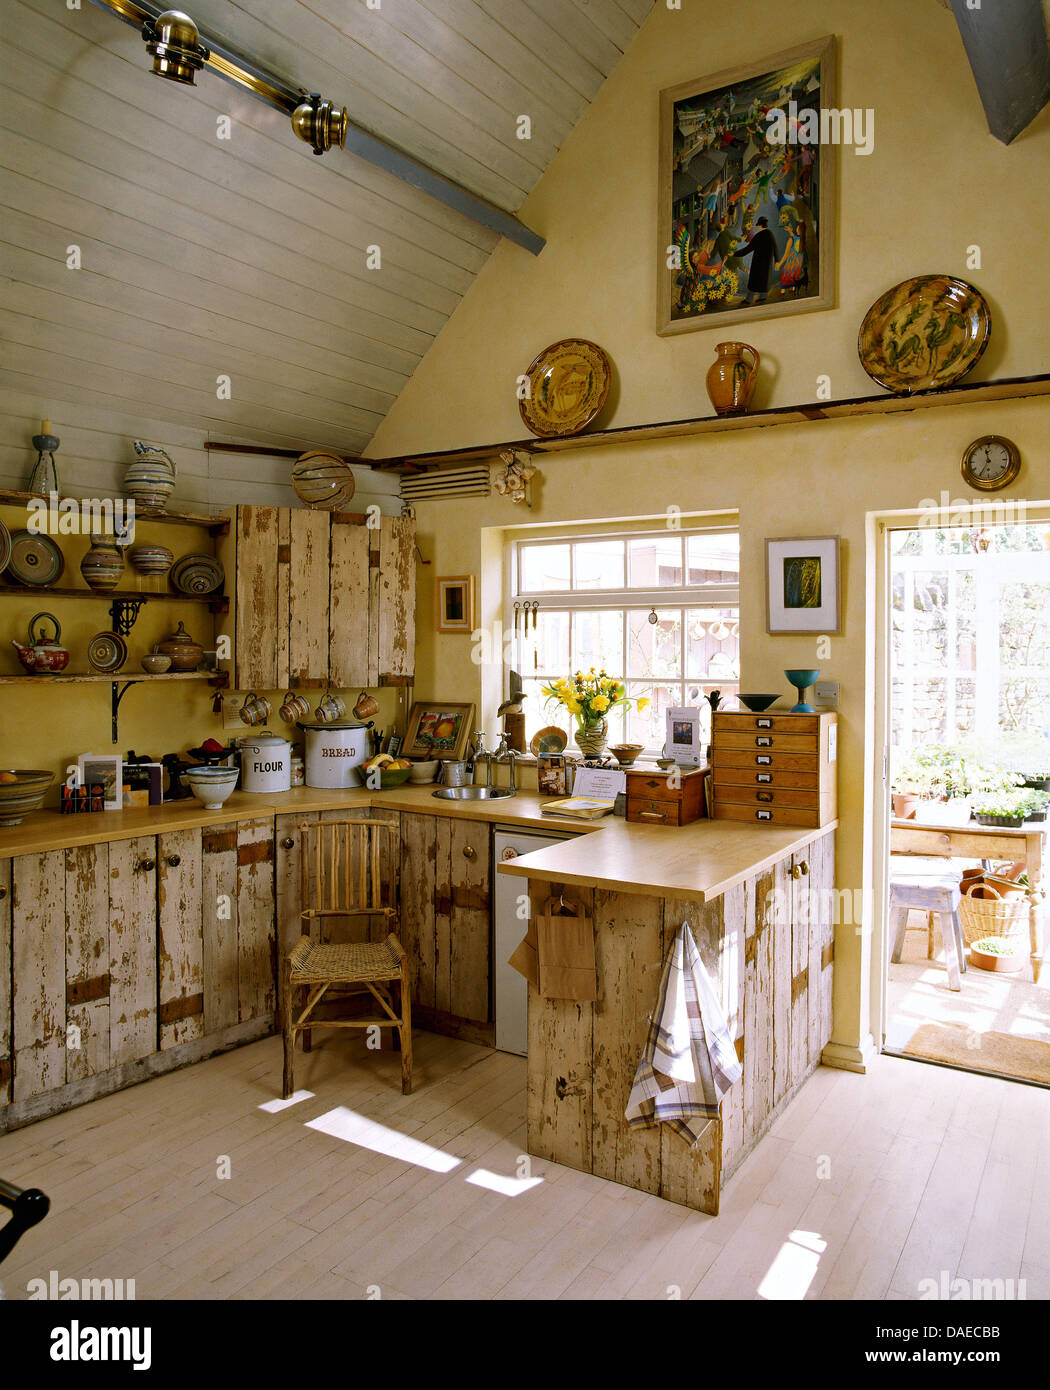 Genial Rustic Country Kitchen With Salvaged Wood Cupboards, A Pitched Roof, And  Conservatory Beyond